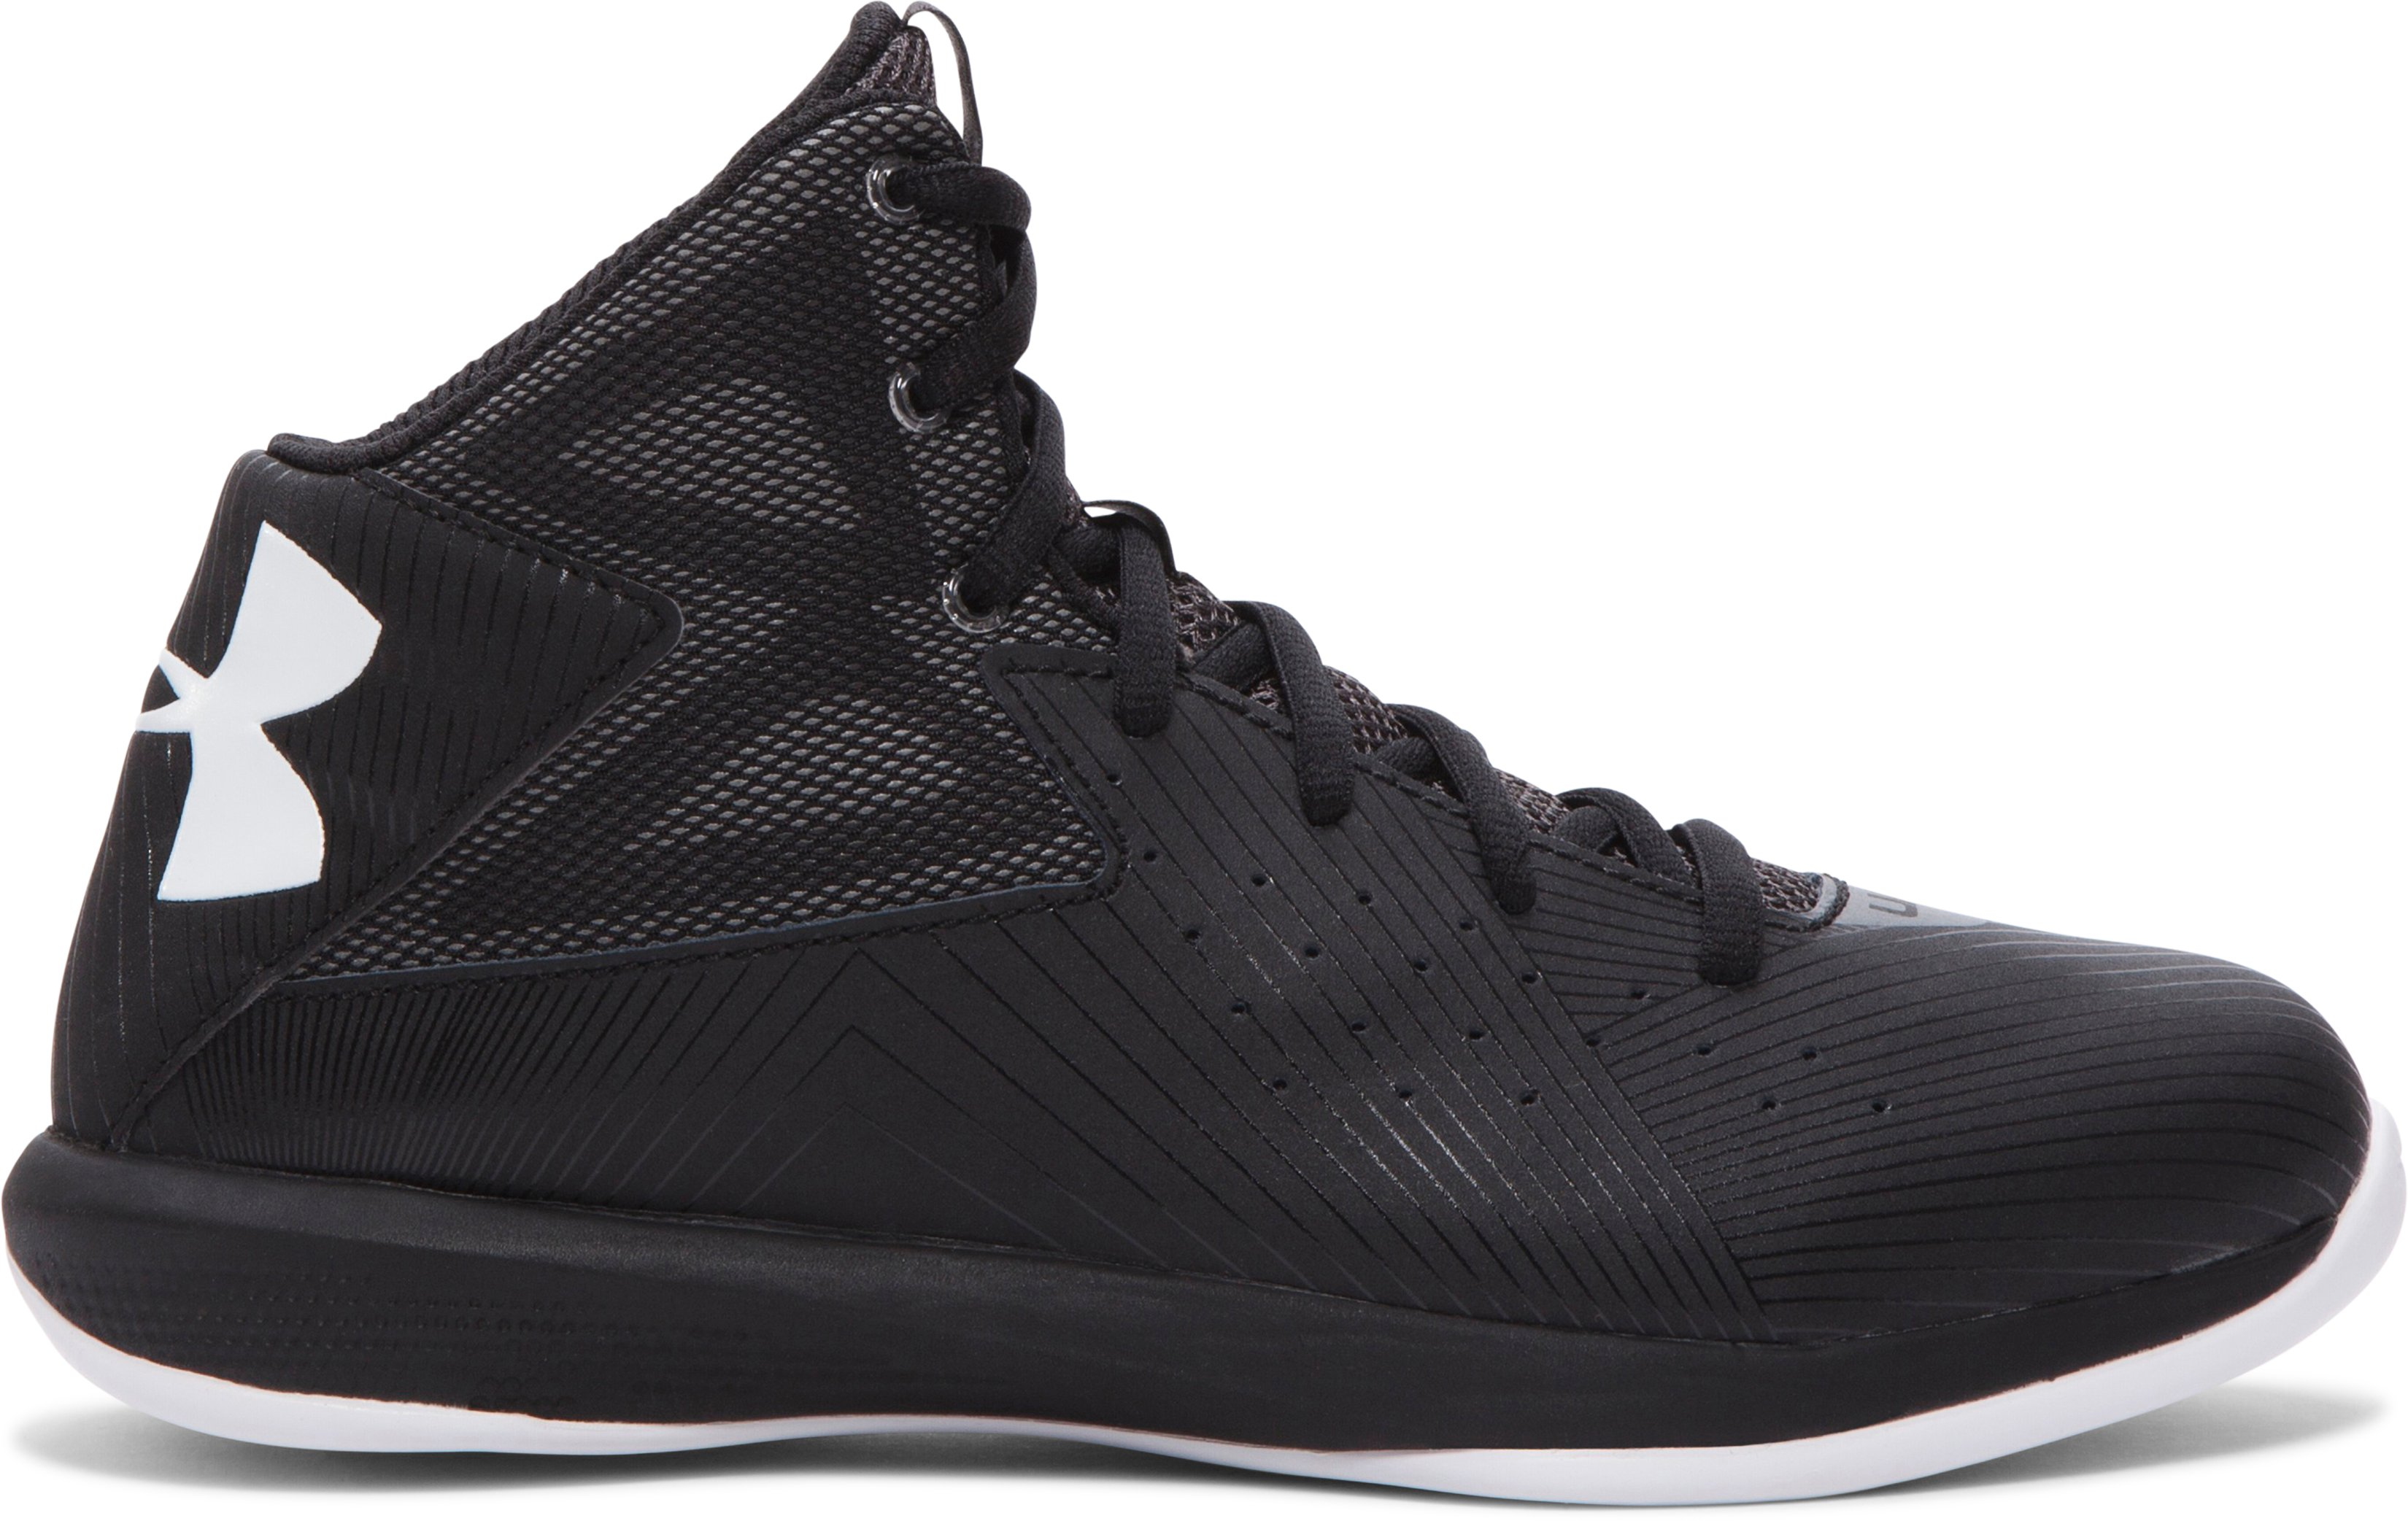 Boys' Grade School UA Rocket Basketball Shoes, Black